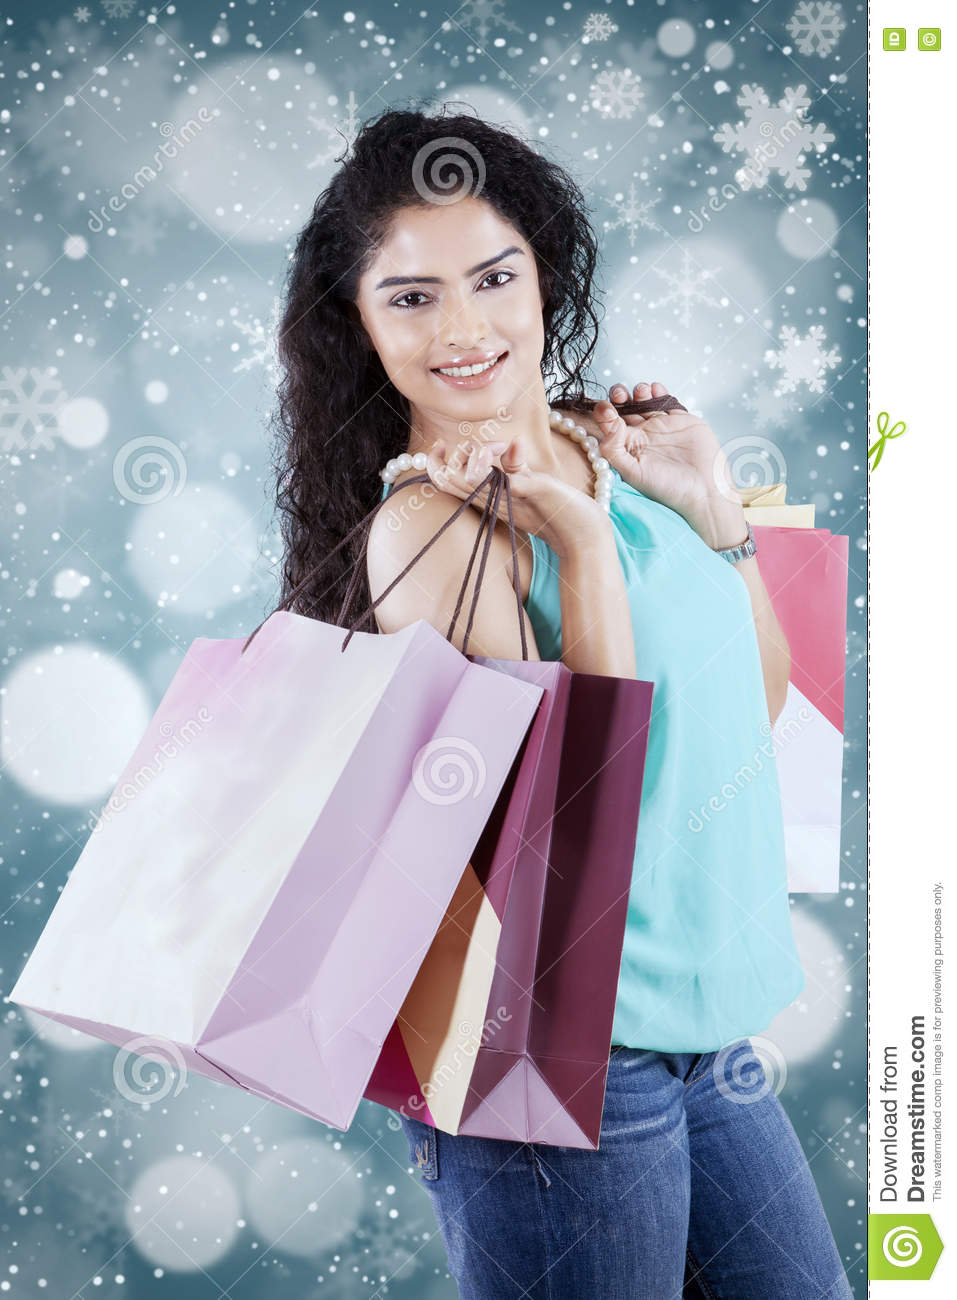 Female shopper with winter background